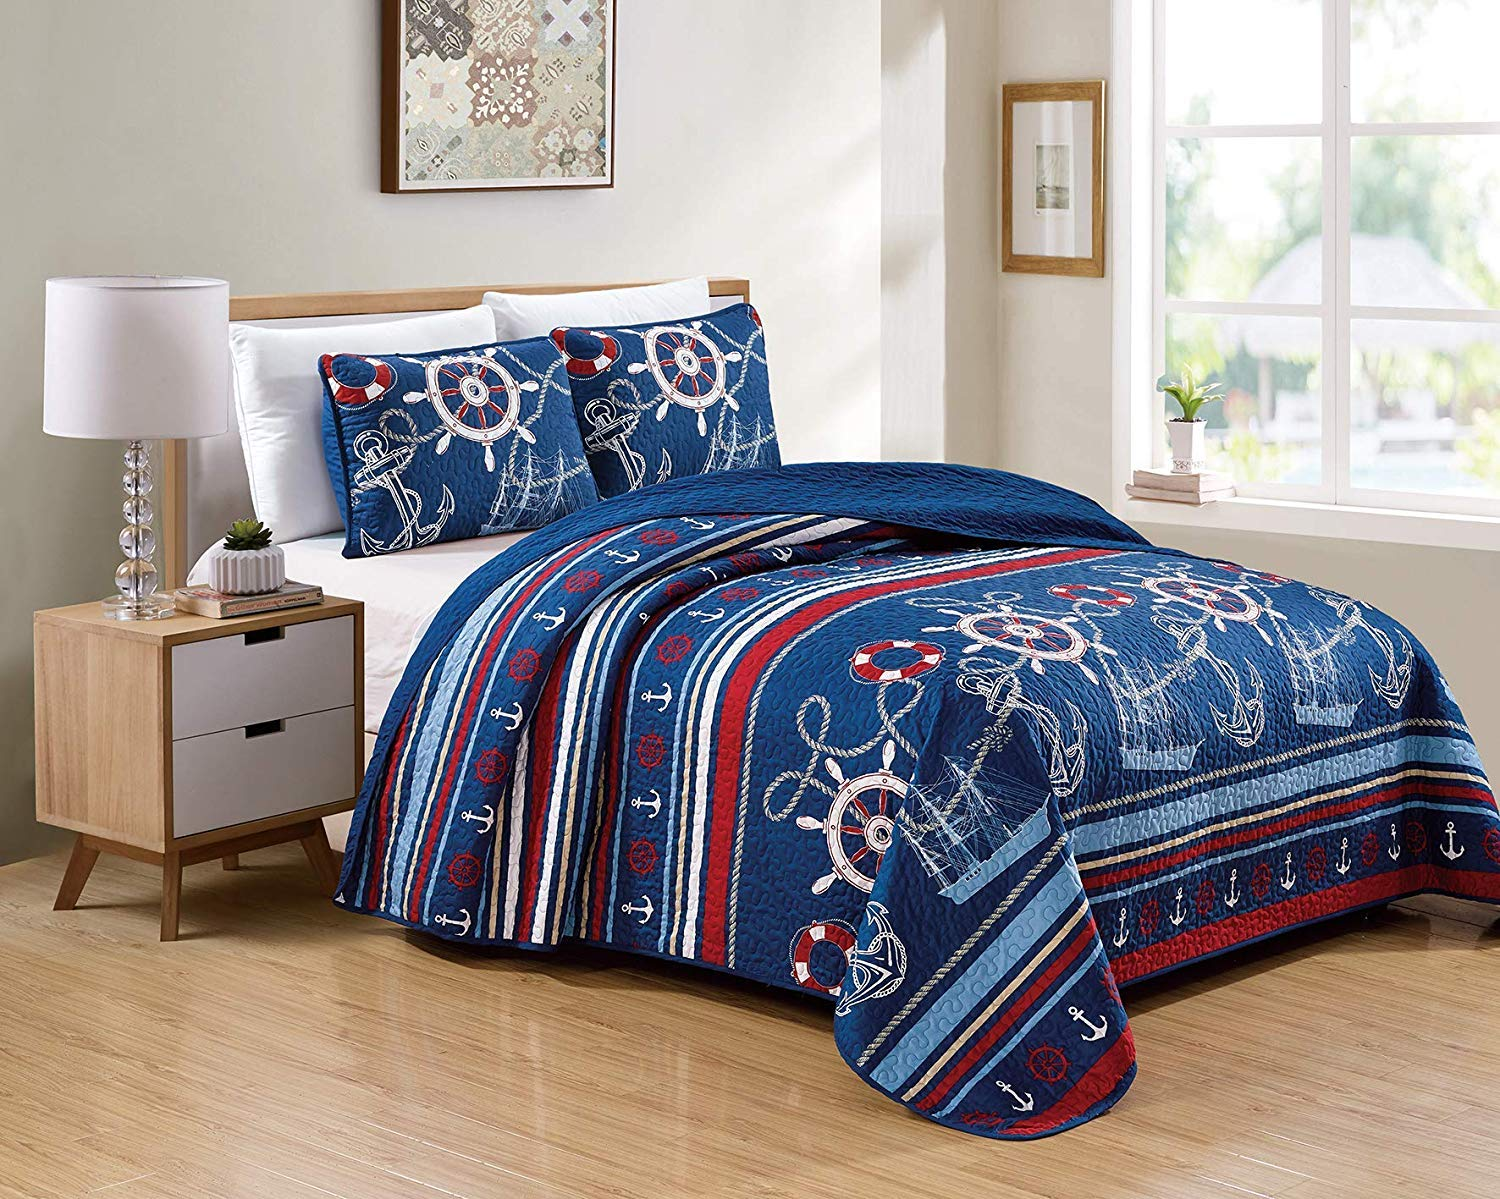 Luxury Home Collection 3 Piece King/California King Oversized Quilted Reversible Coverlet Bedspread Bedding Set Coastal Sailing Ships Anchors Blue White Red Striped